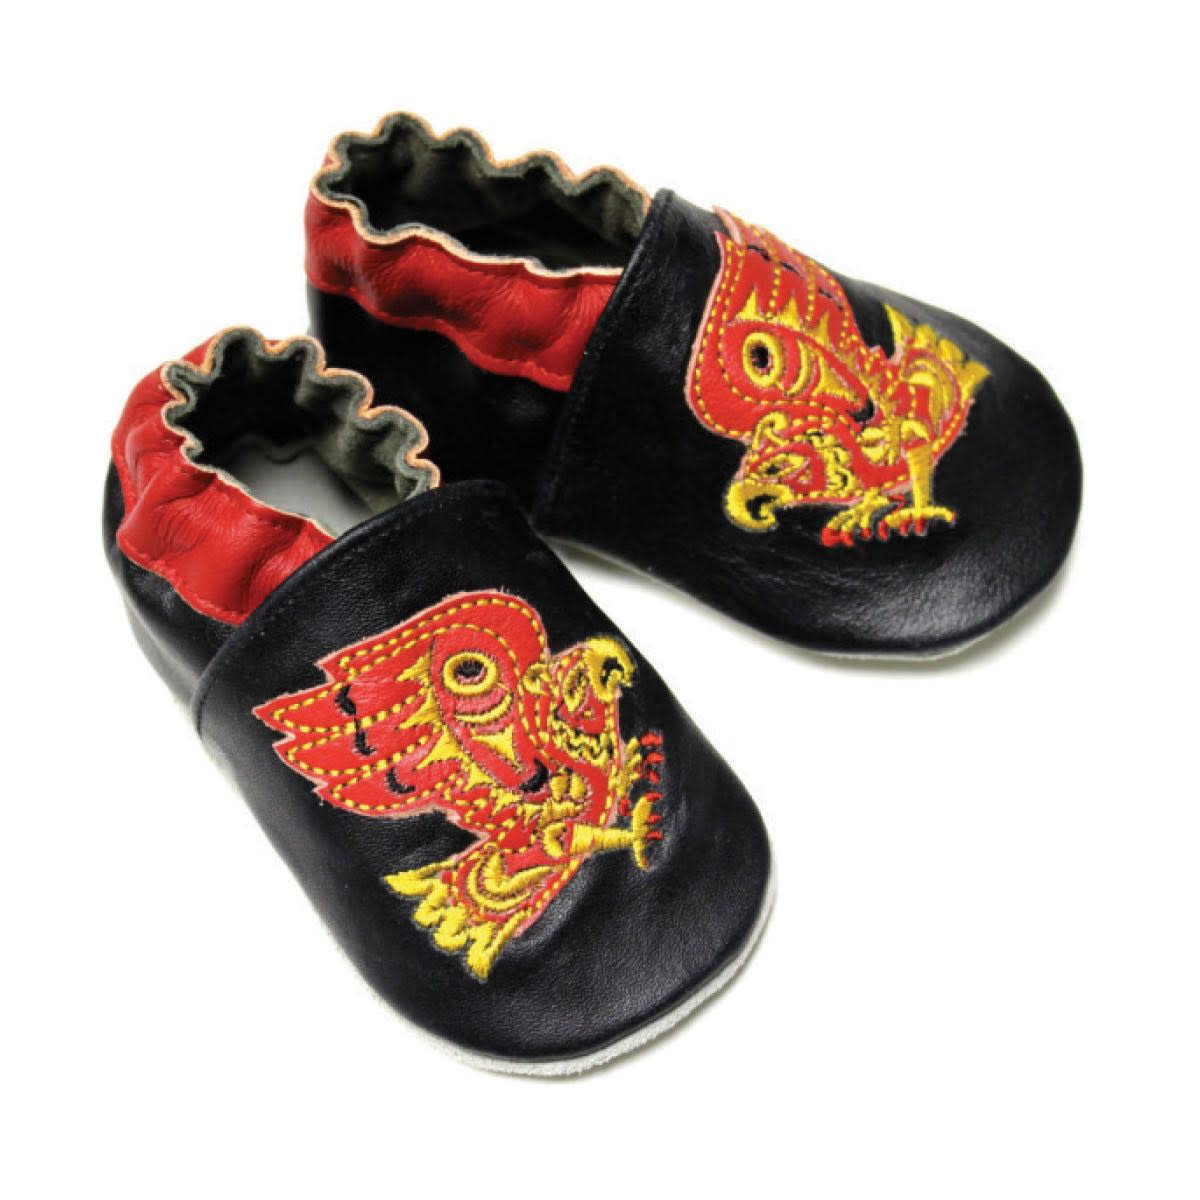 Baby Shoes-Thunderbird Doug LaFortune-1